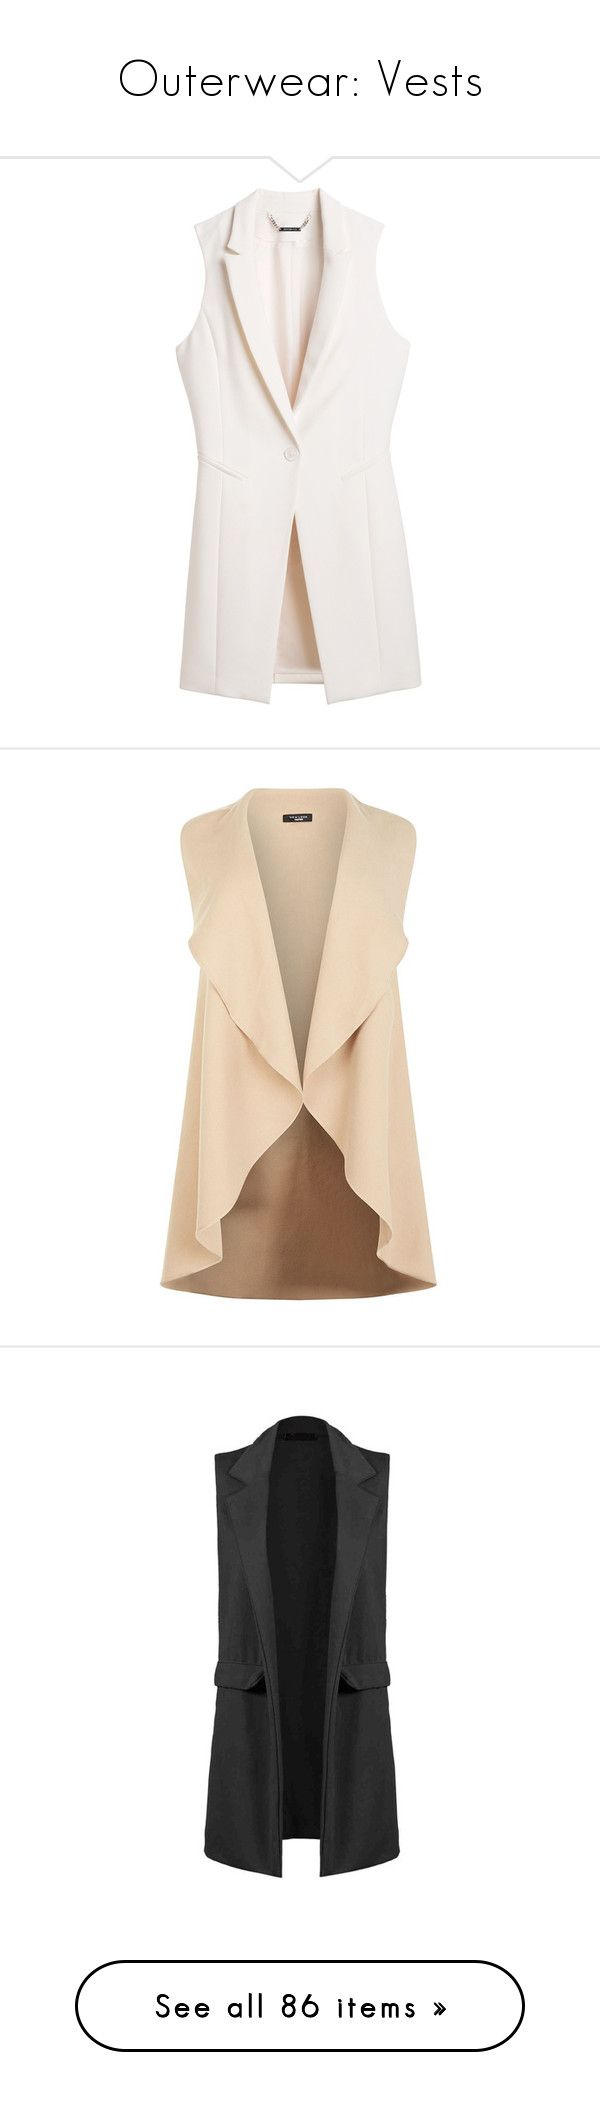 """""""Outerwear: Vests"""" by jay-to-the-kay ❤ liked on Polyvore featuring vests, outerwear, jackets, blazers, long line blazer, white sleeveless blazer, white house black market, sleeveless jacket, long sleeveless blazer and plus size womens vest"""